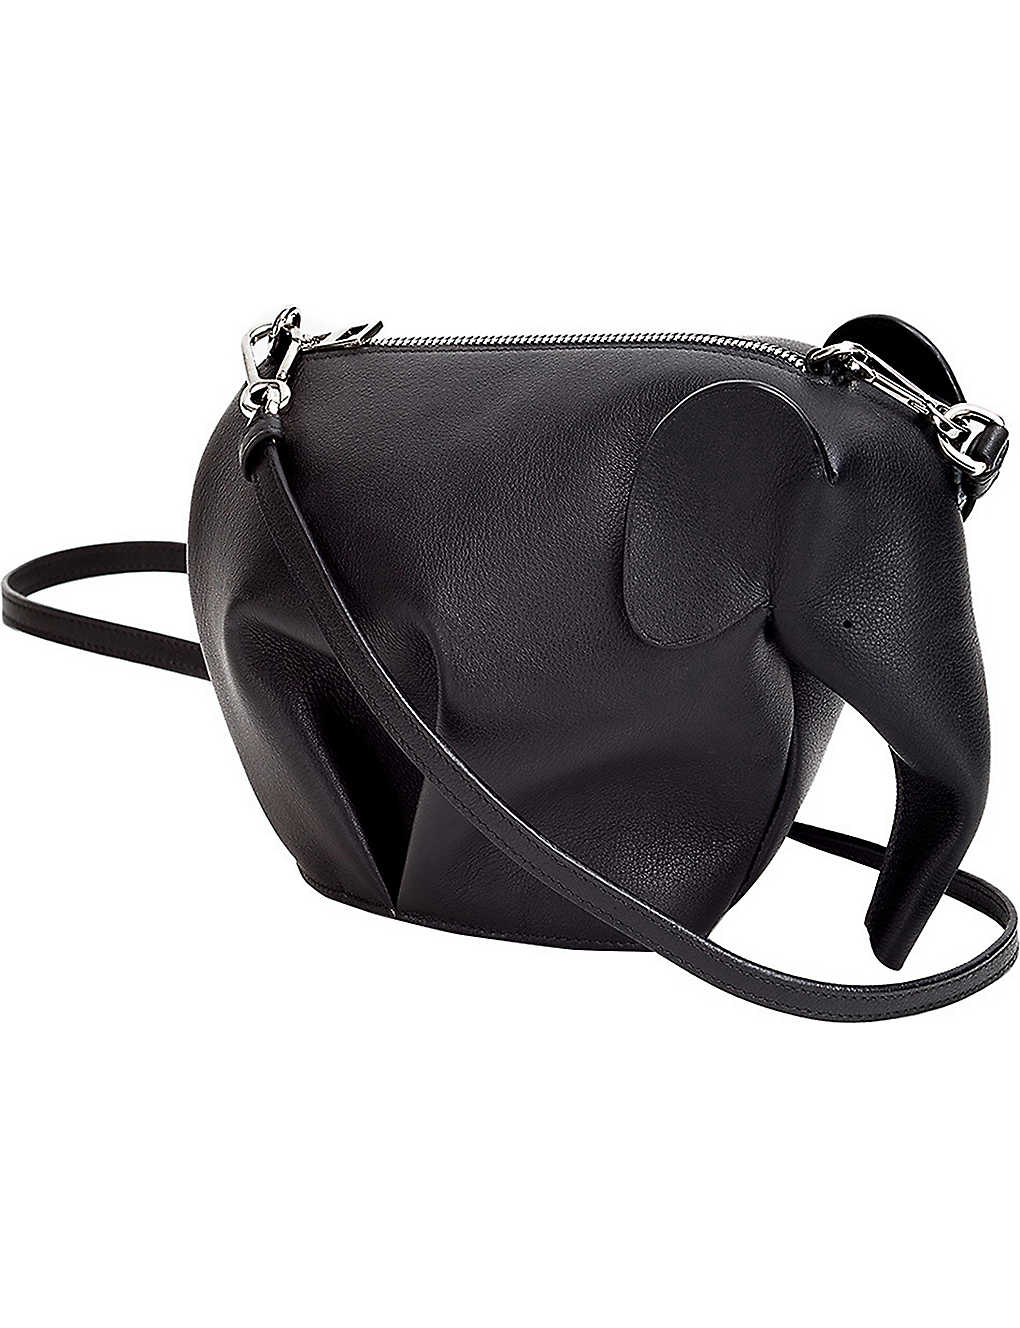 LOEWE: Elephant minibag leather shoulder bag